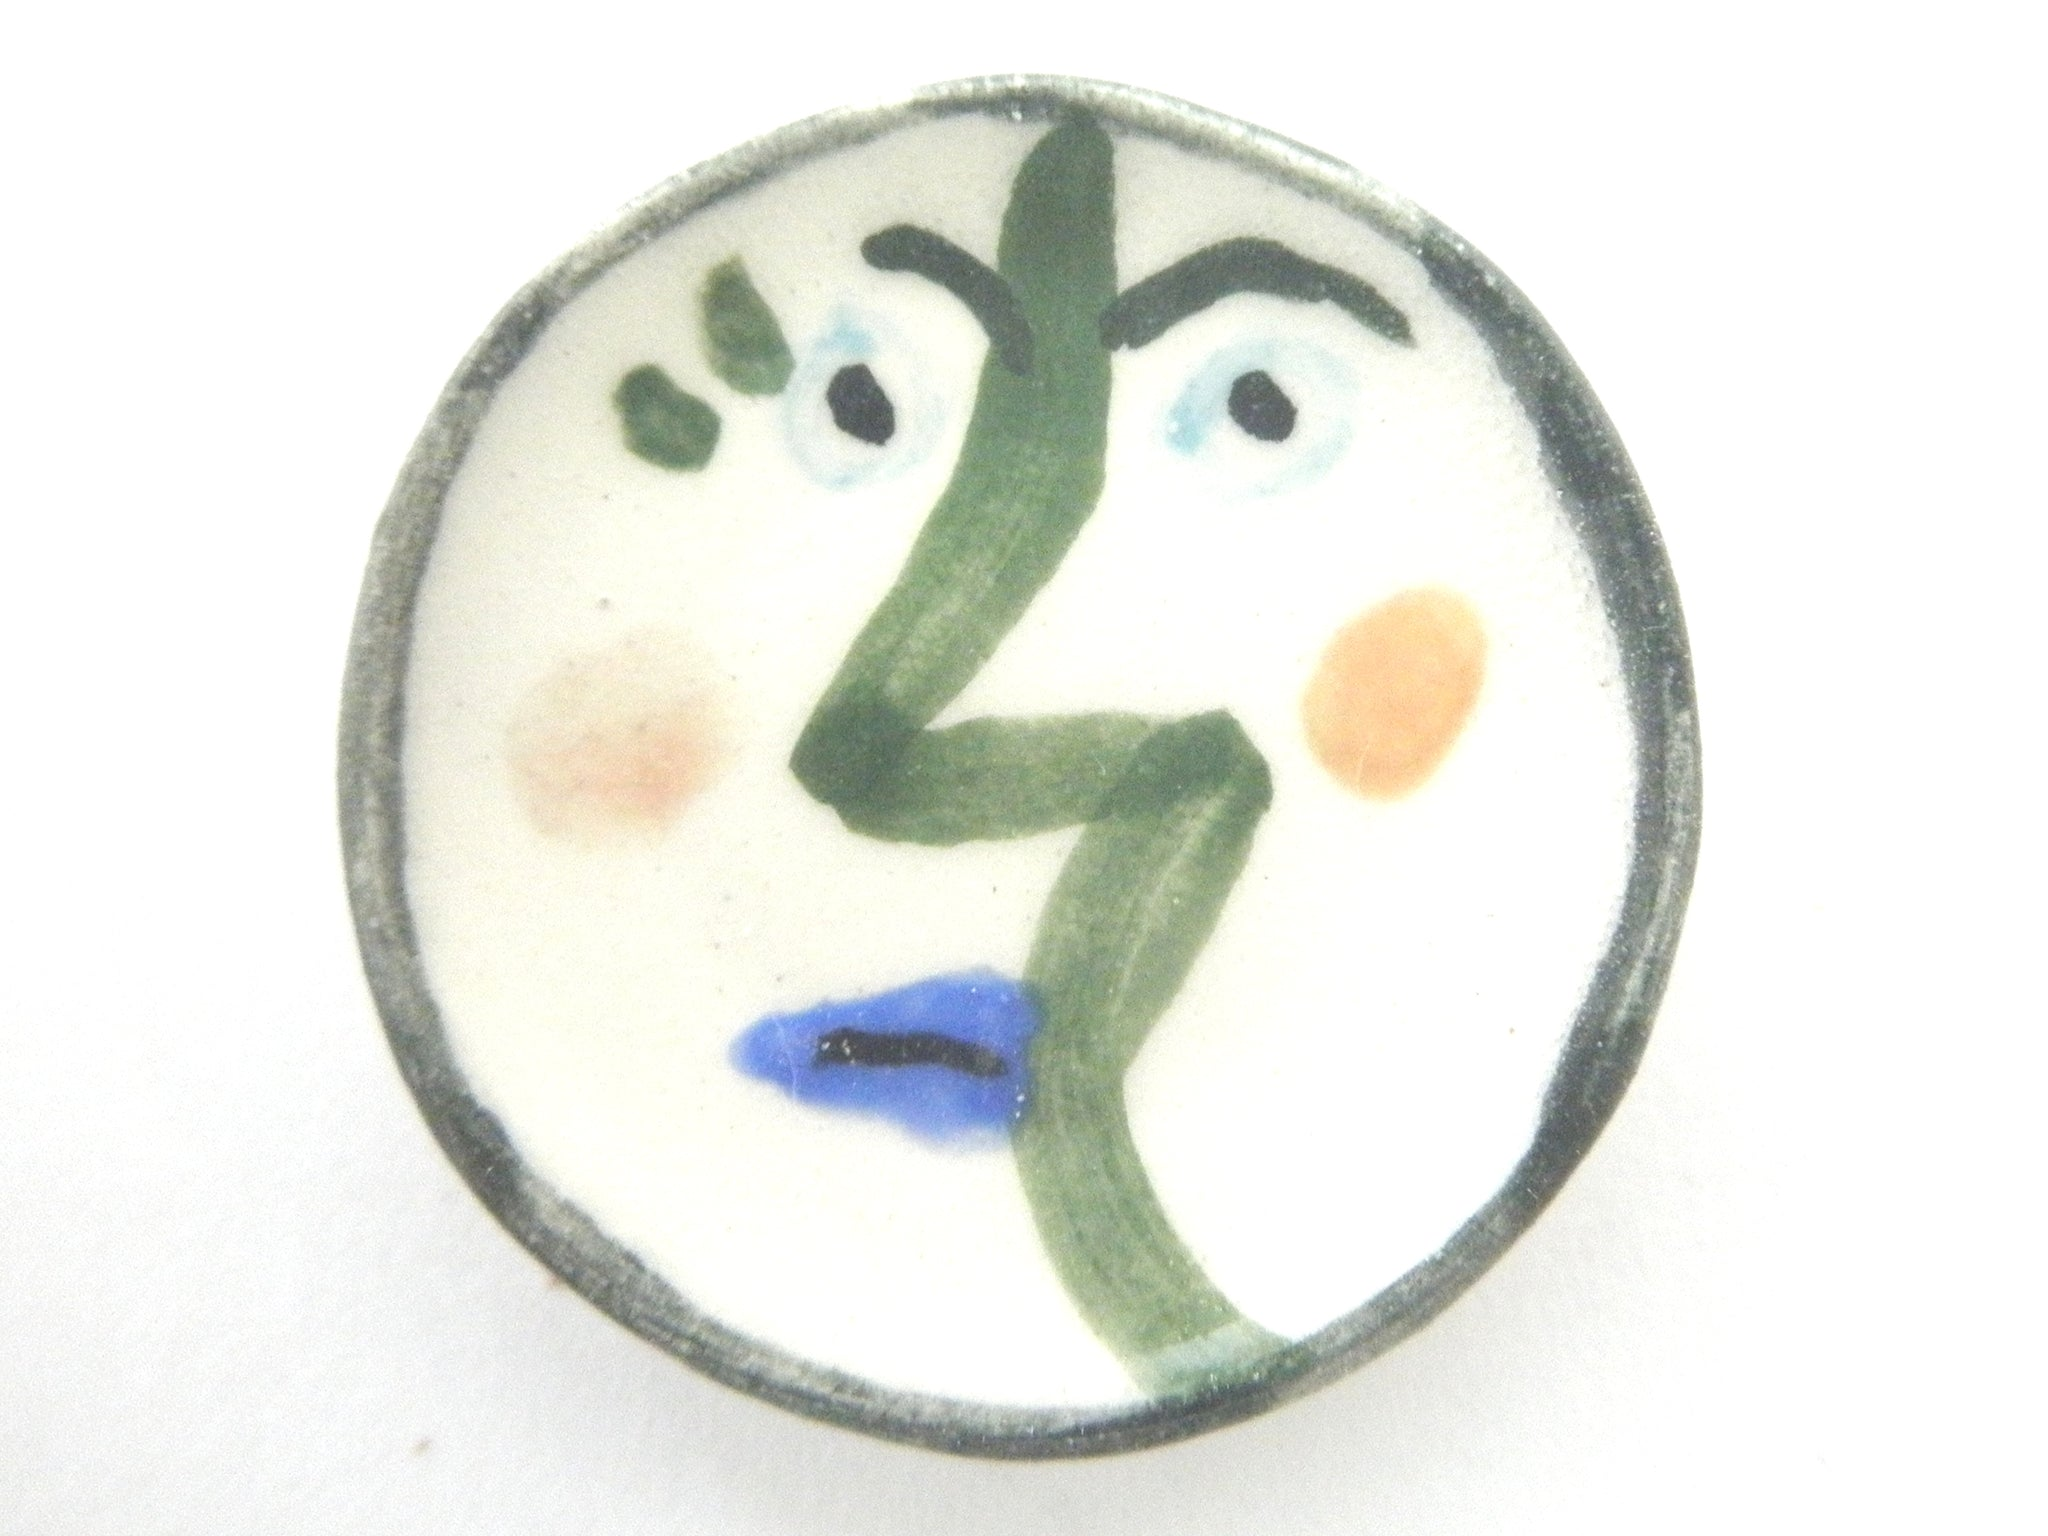 Miniature Picasso inspired small ceramic plate - face with green nose